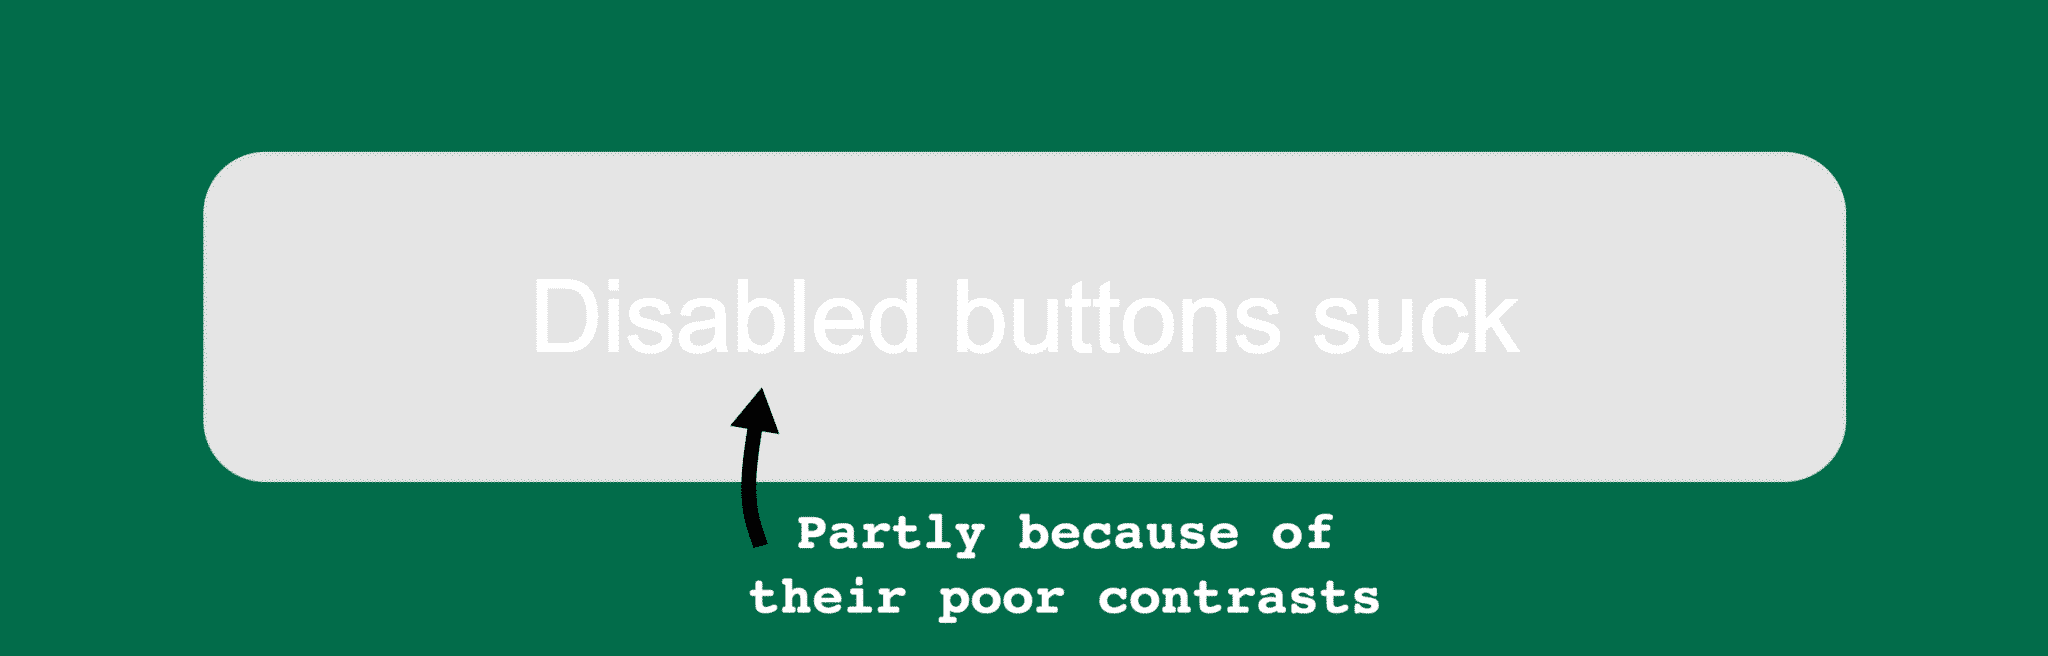 "Disabled button with text ""Disabled buttons suck"". Text below says: ""Partly because of their poor contrasts""."